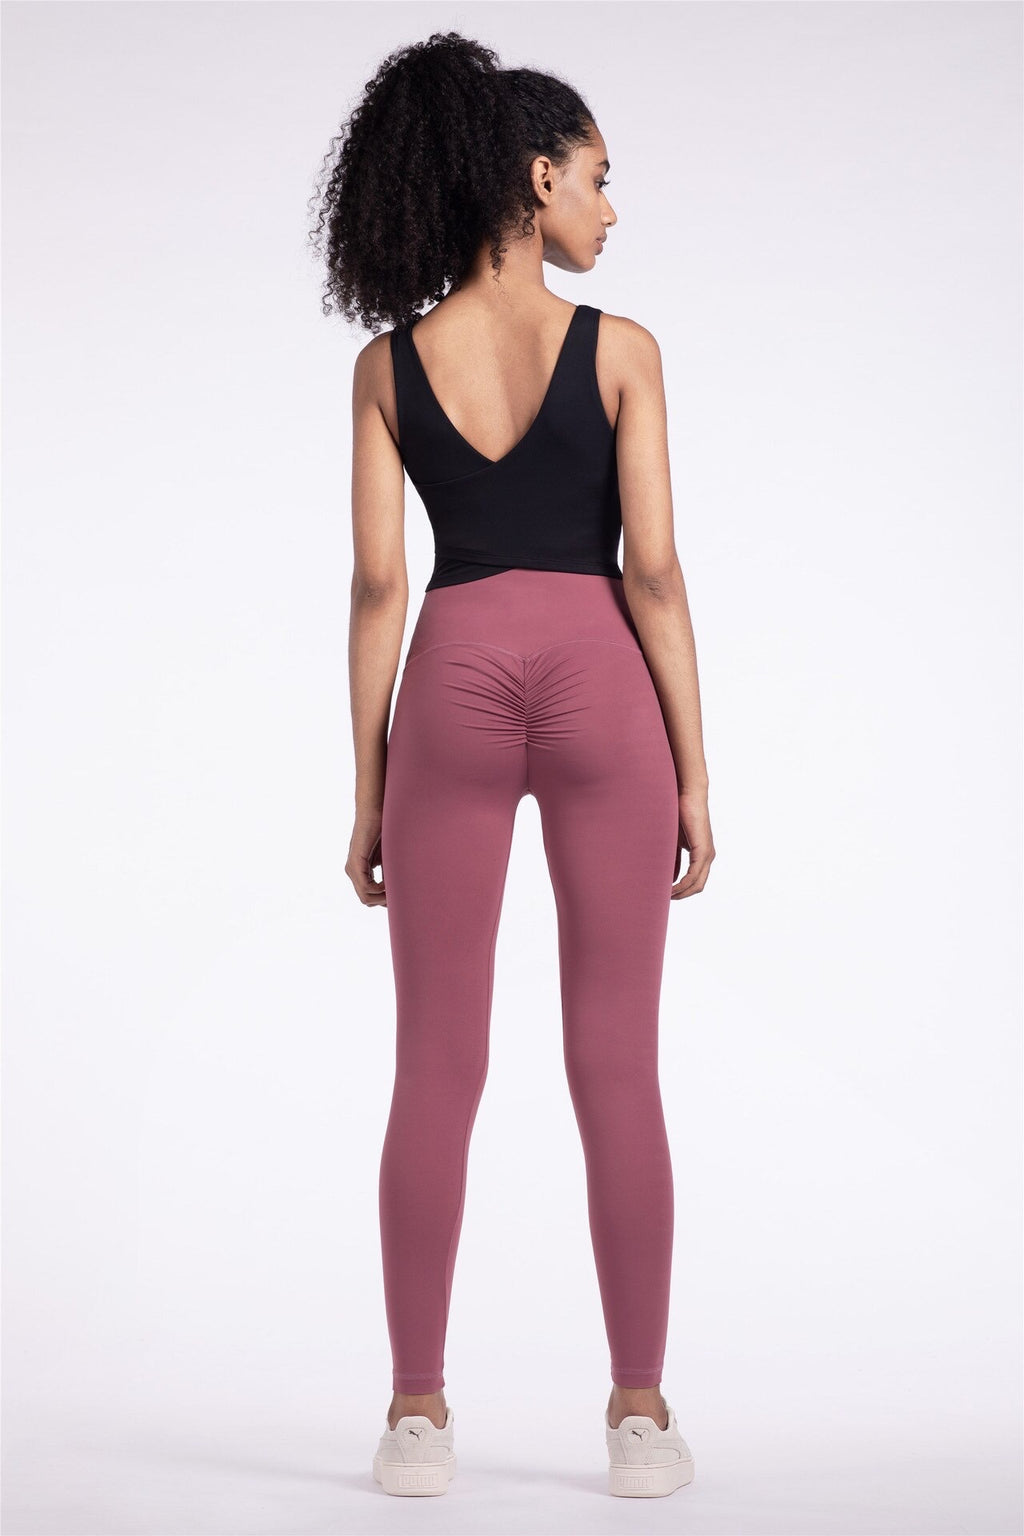 Astoria LUXE Scrunch 2.0 Legging - Rose